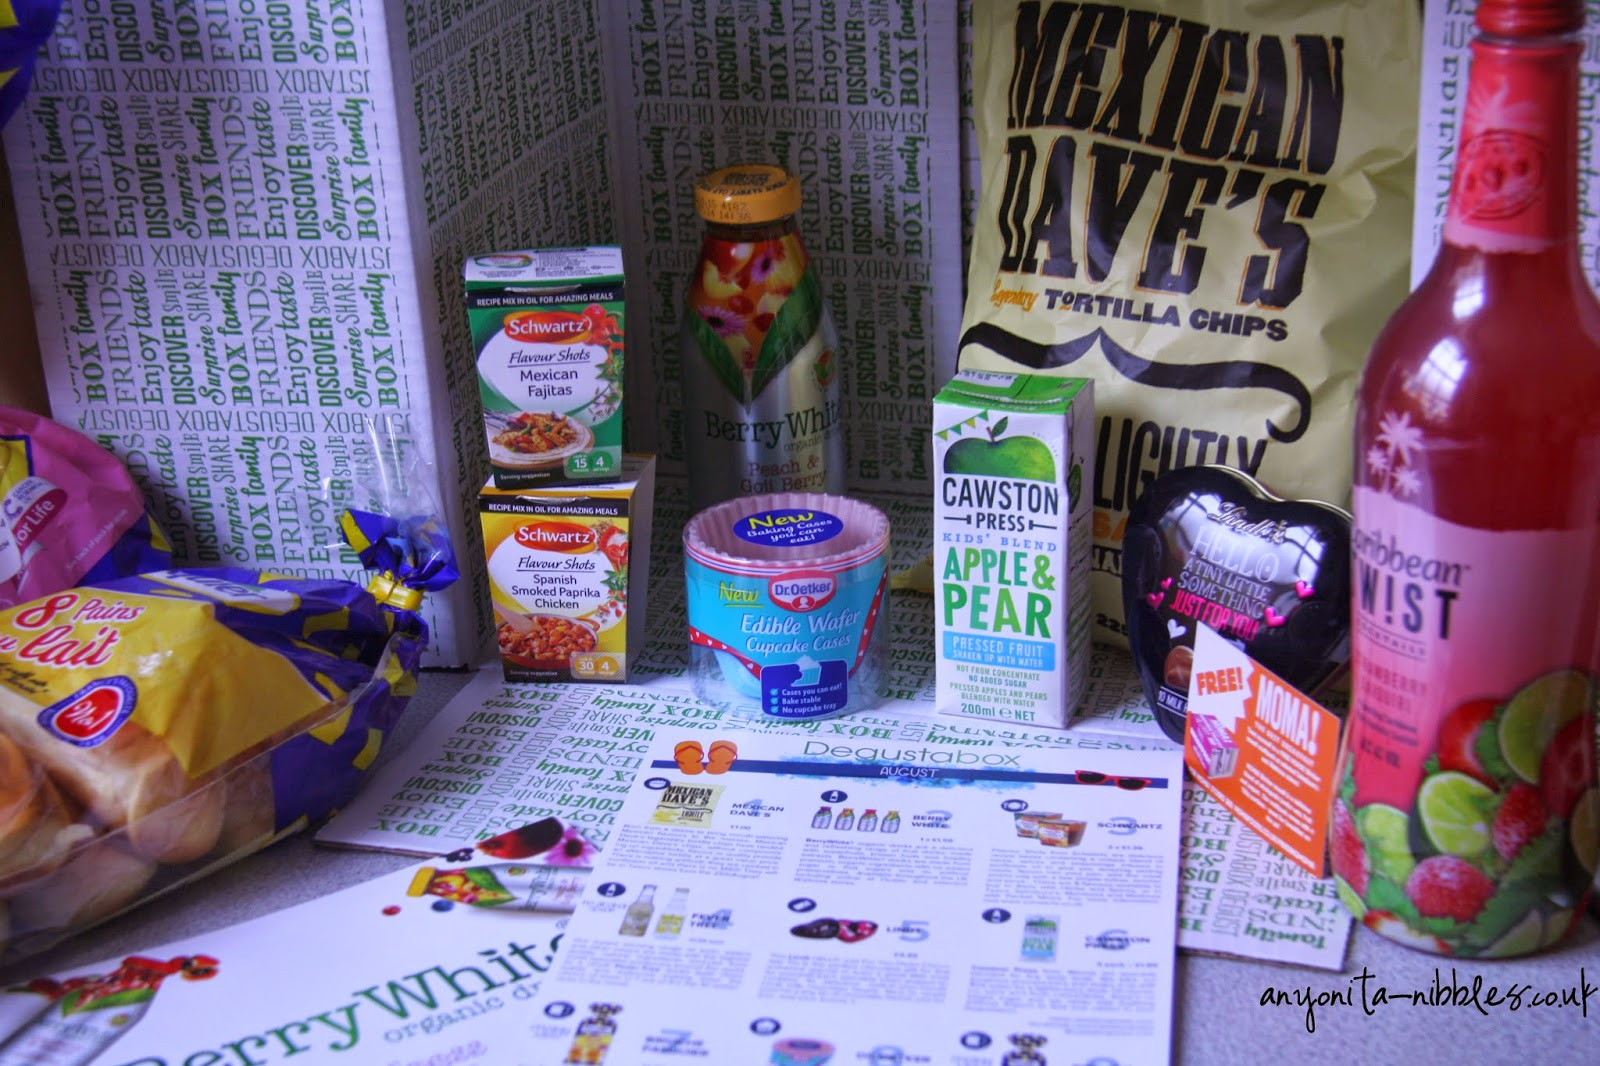 Degustabox provides a variety of groceries to your door | anyonita-nibbles.co.uk